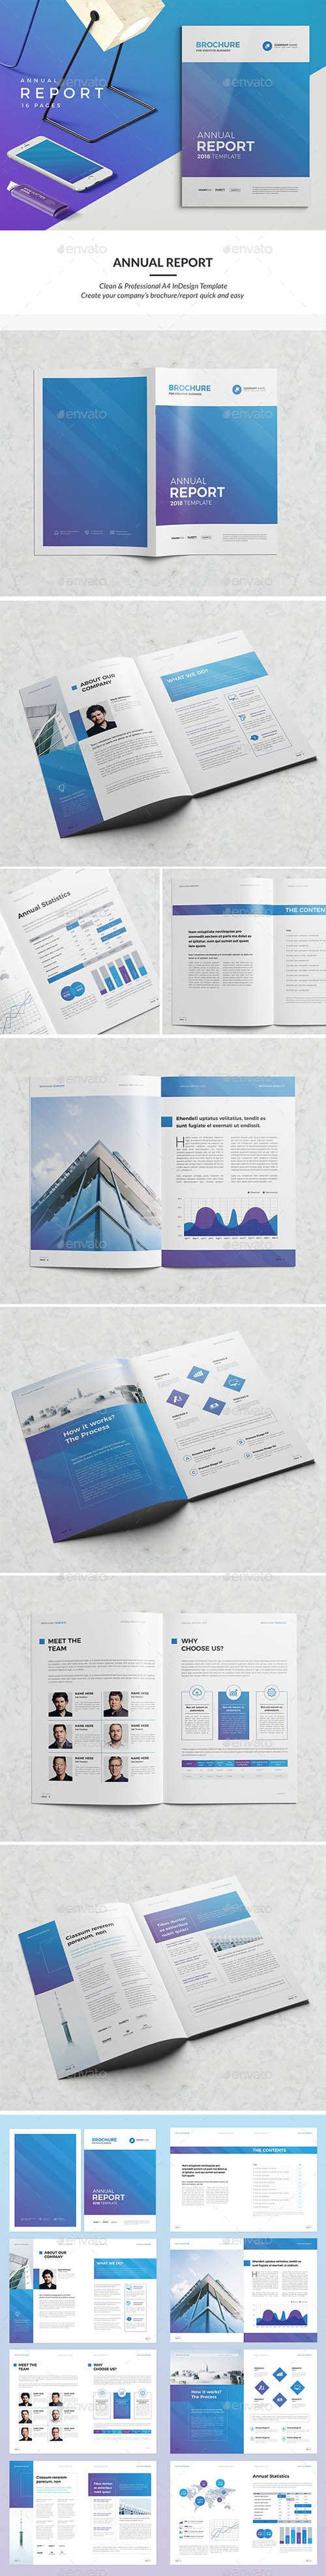 GR - Clean Annual Report 16 Pages 20353522